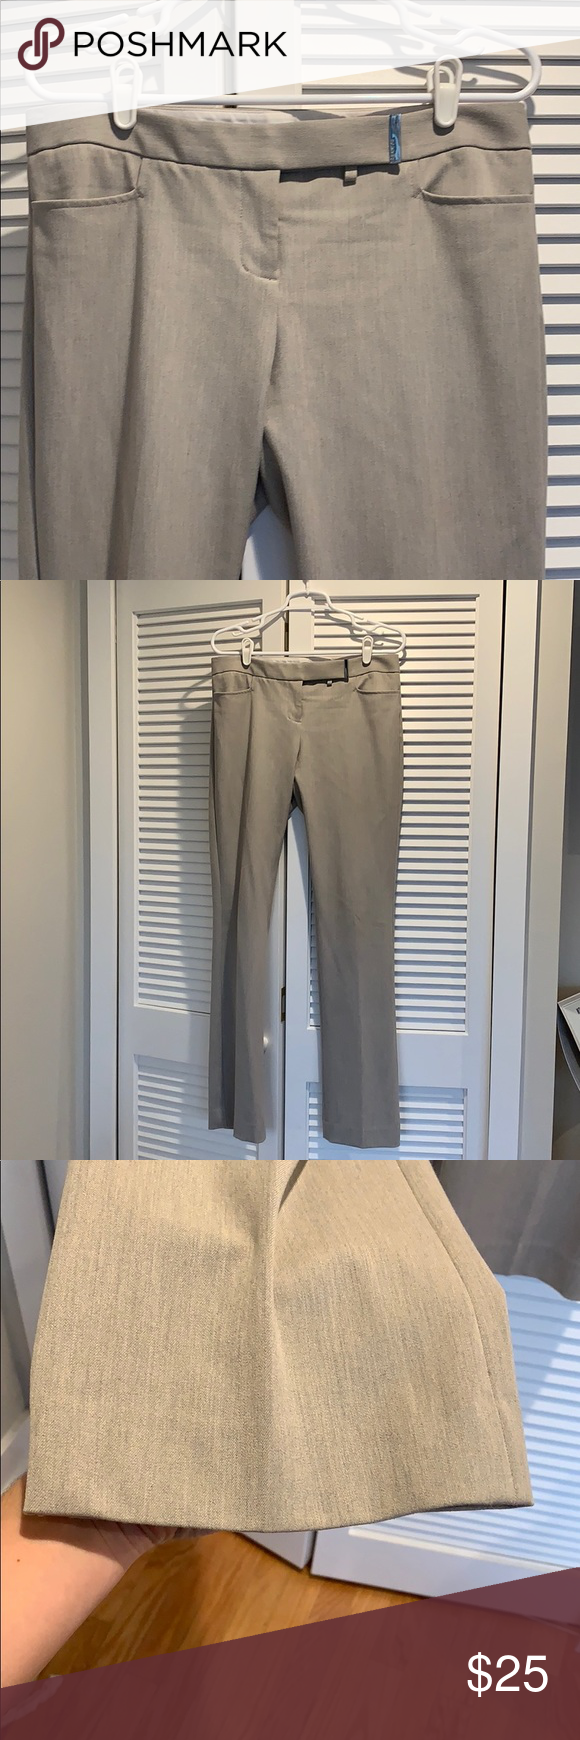 Express Columnist Slacks These are great, really comfortable work pants. Have loved them for years. They are just too big for me now. Lightly worn. No damage at all. Express Pants Trousers